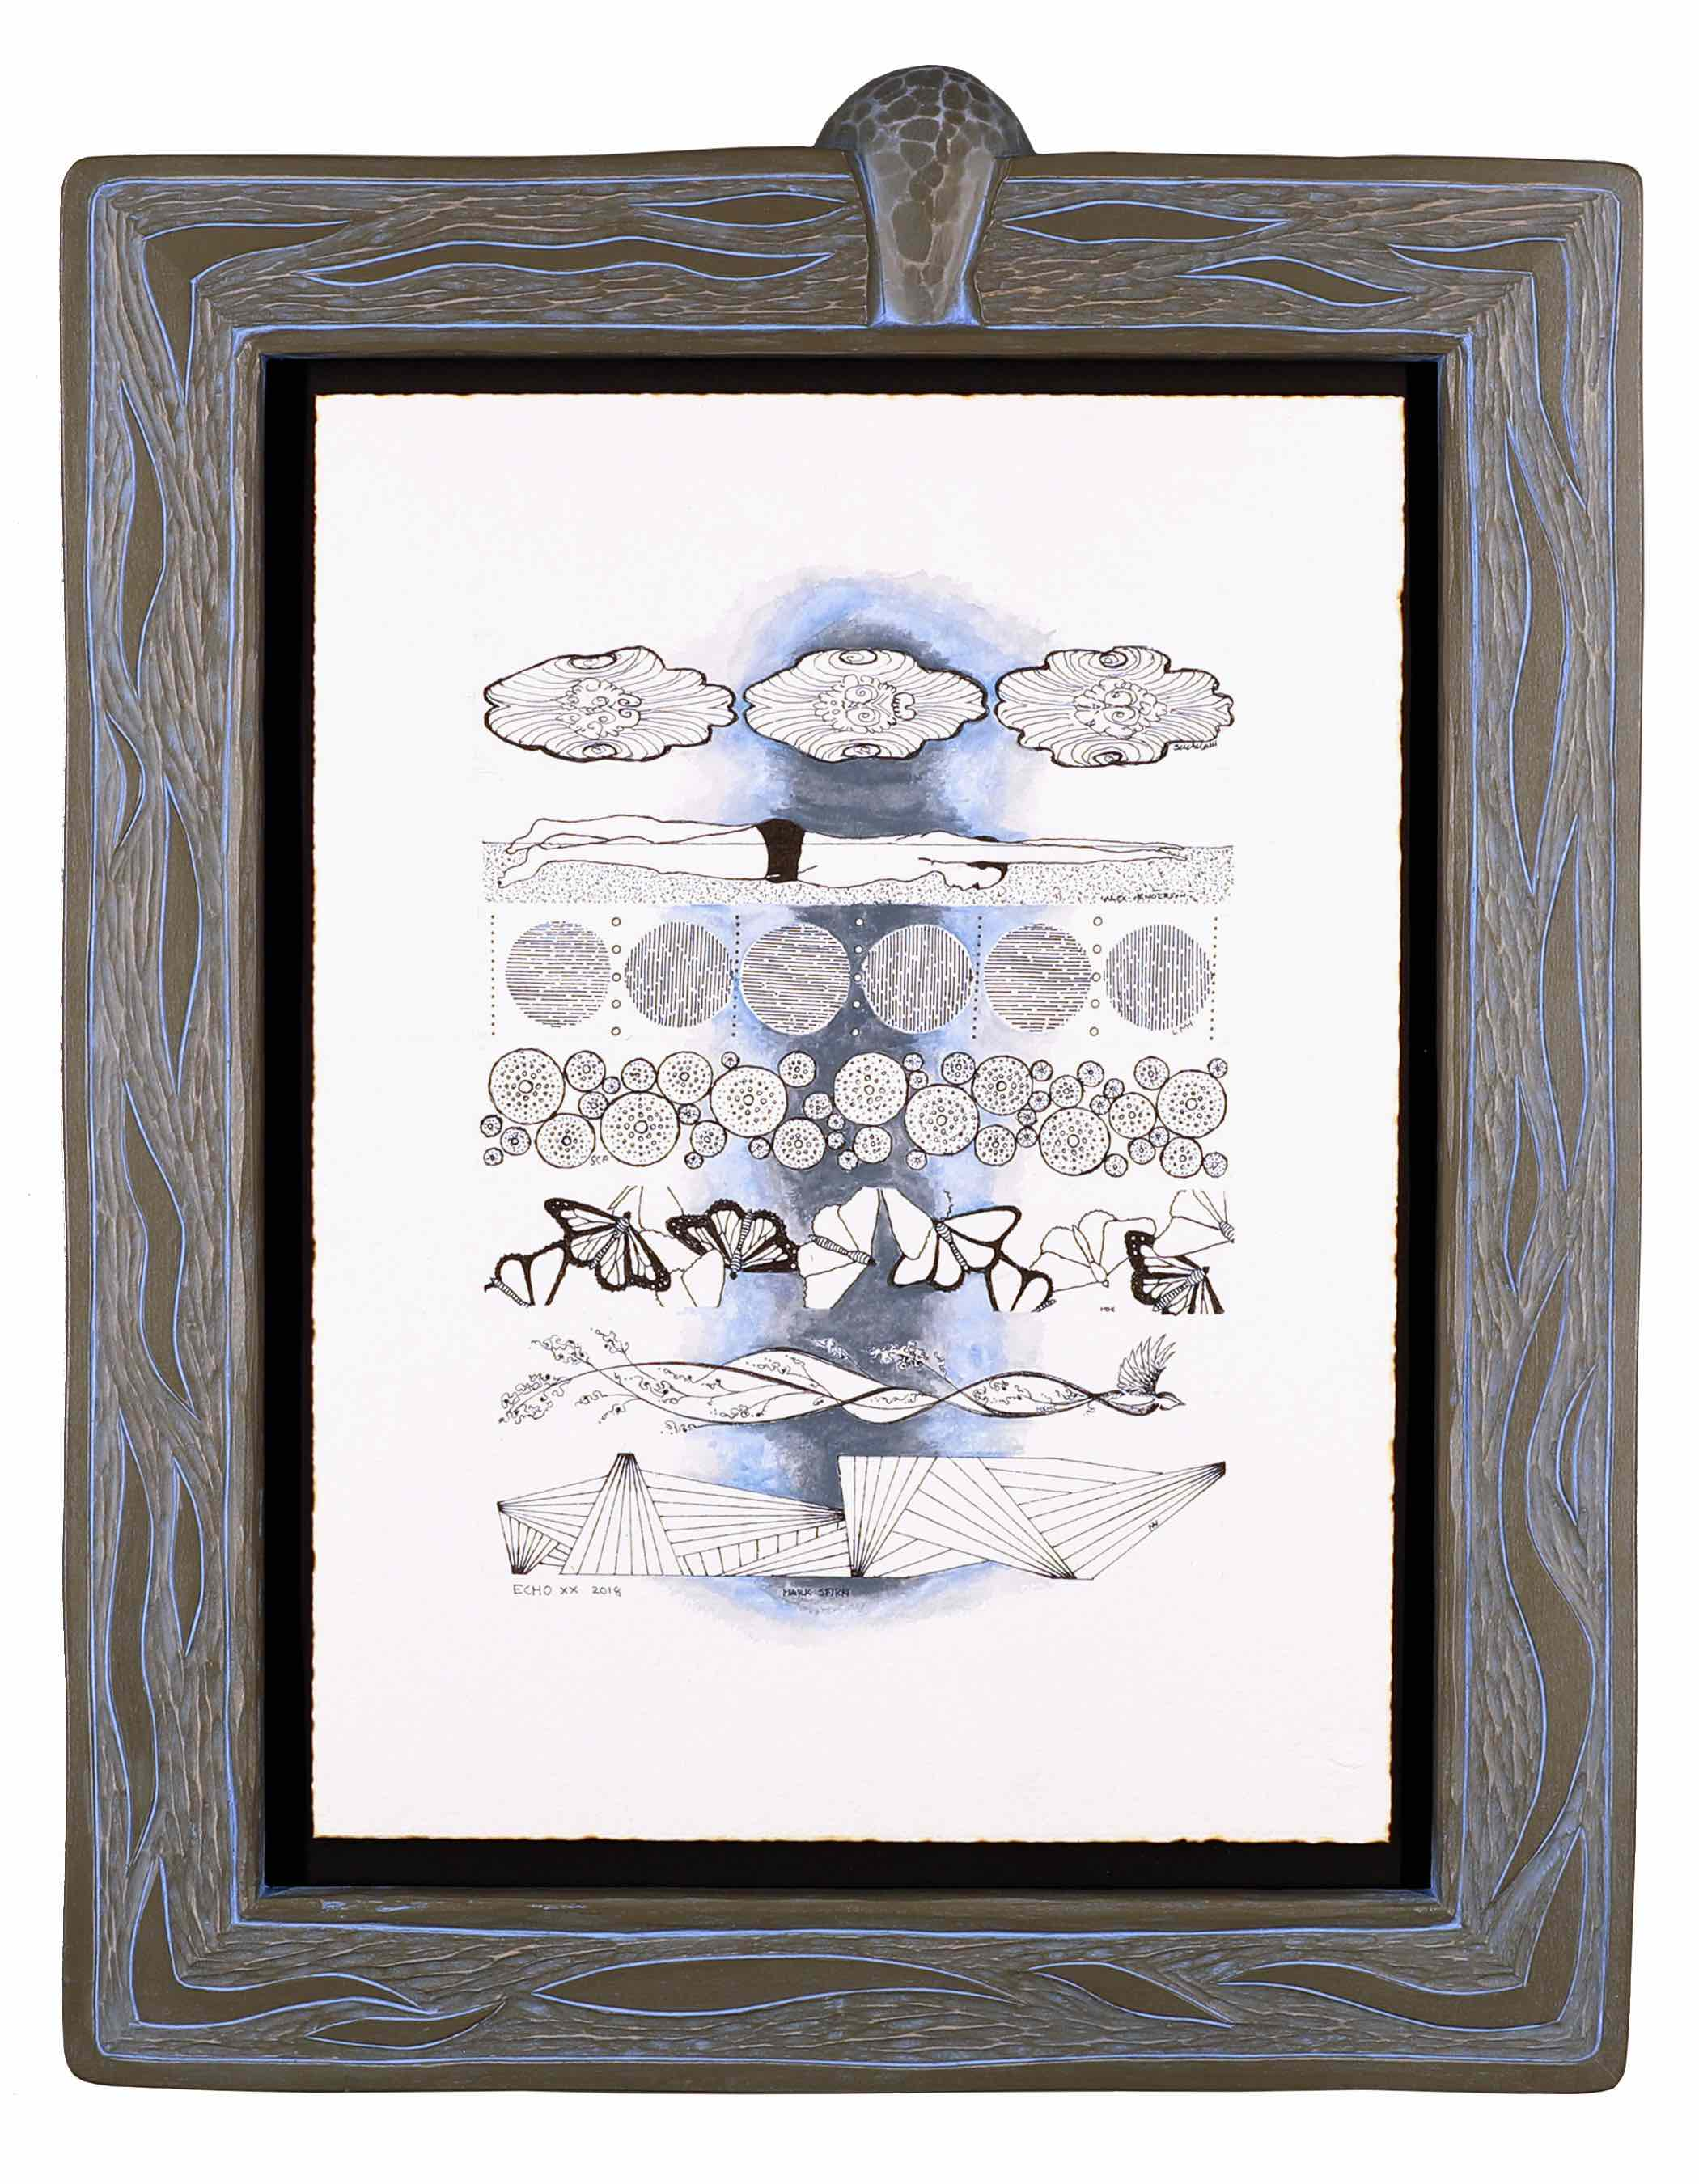 Echo Lake- Blind Collaboration Drawing  Frame carved by Mark Sfirri